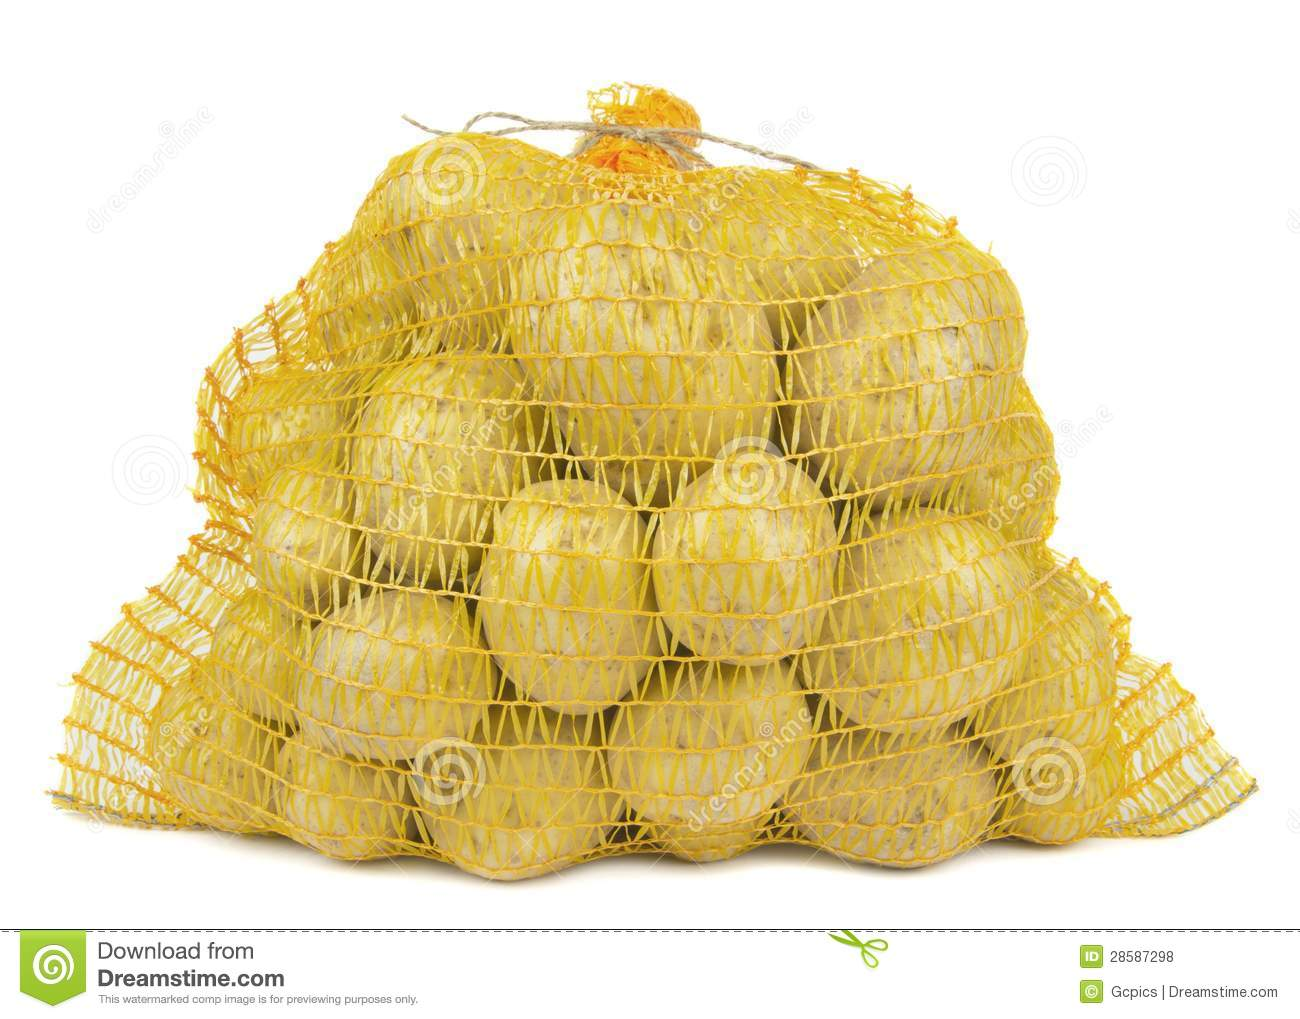 A Bag Of Potatoes Royalty Free Stock Photos - Image: 28587298